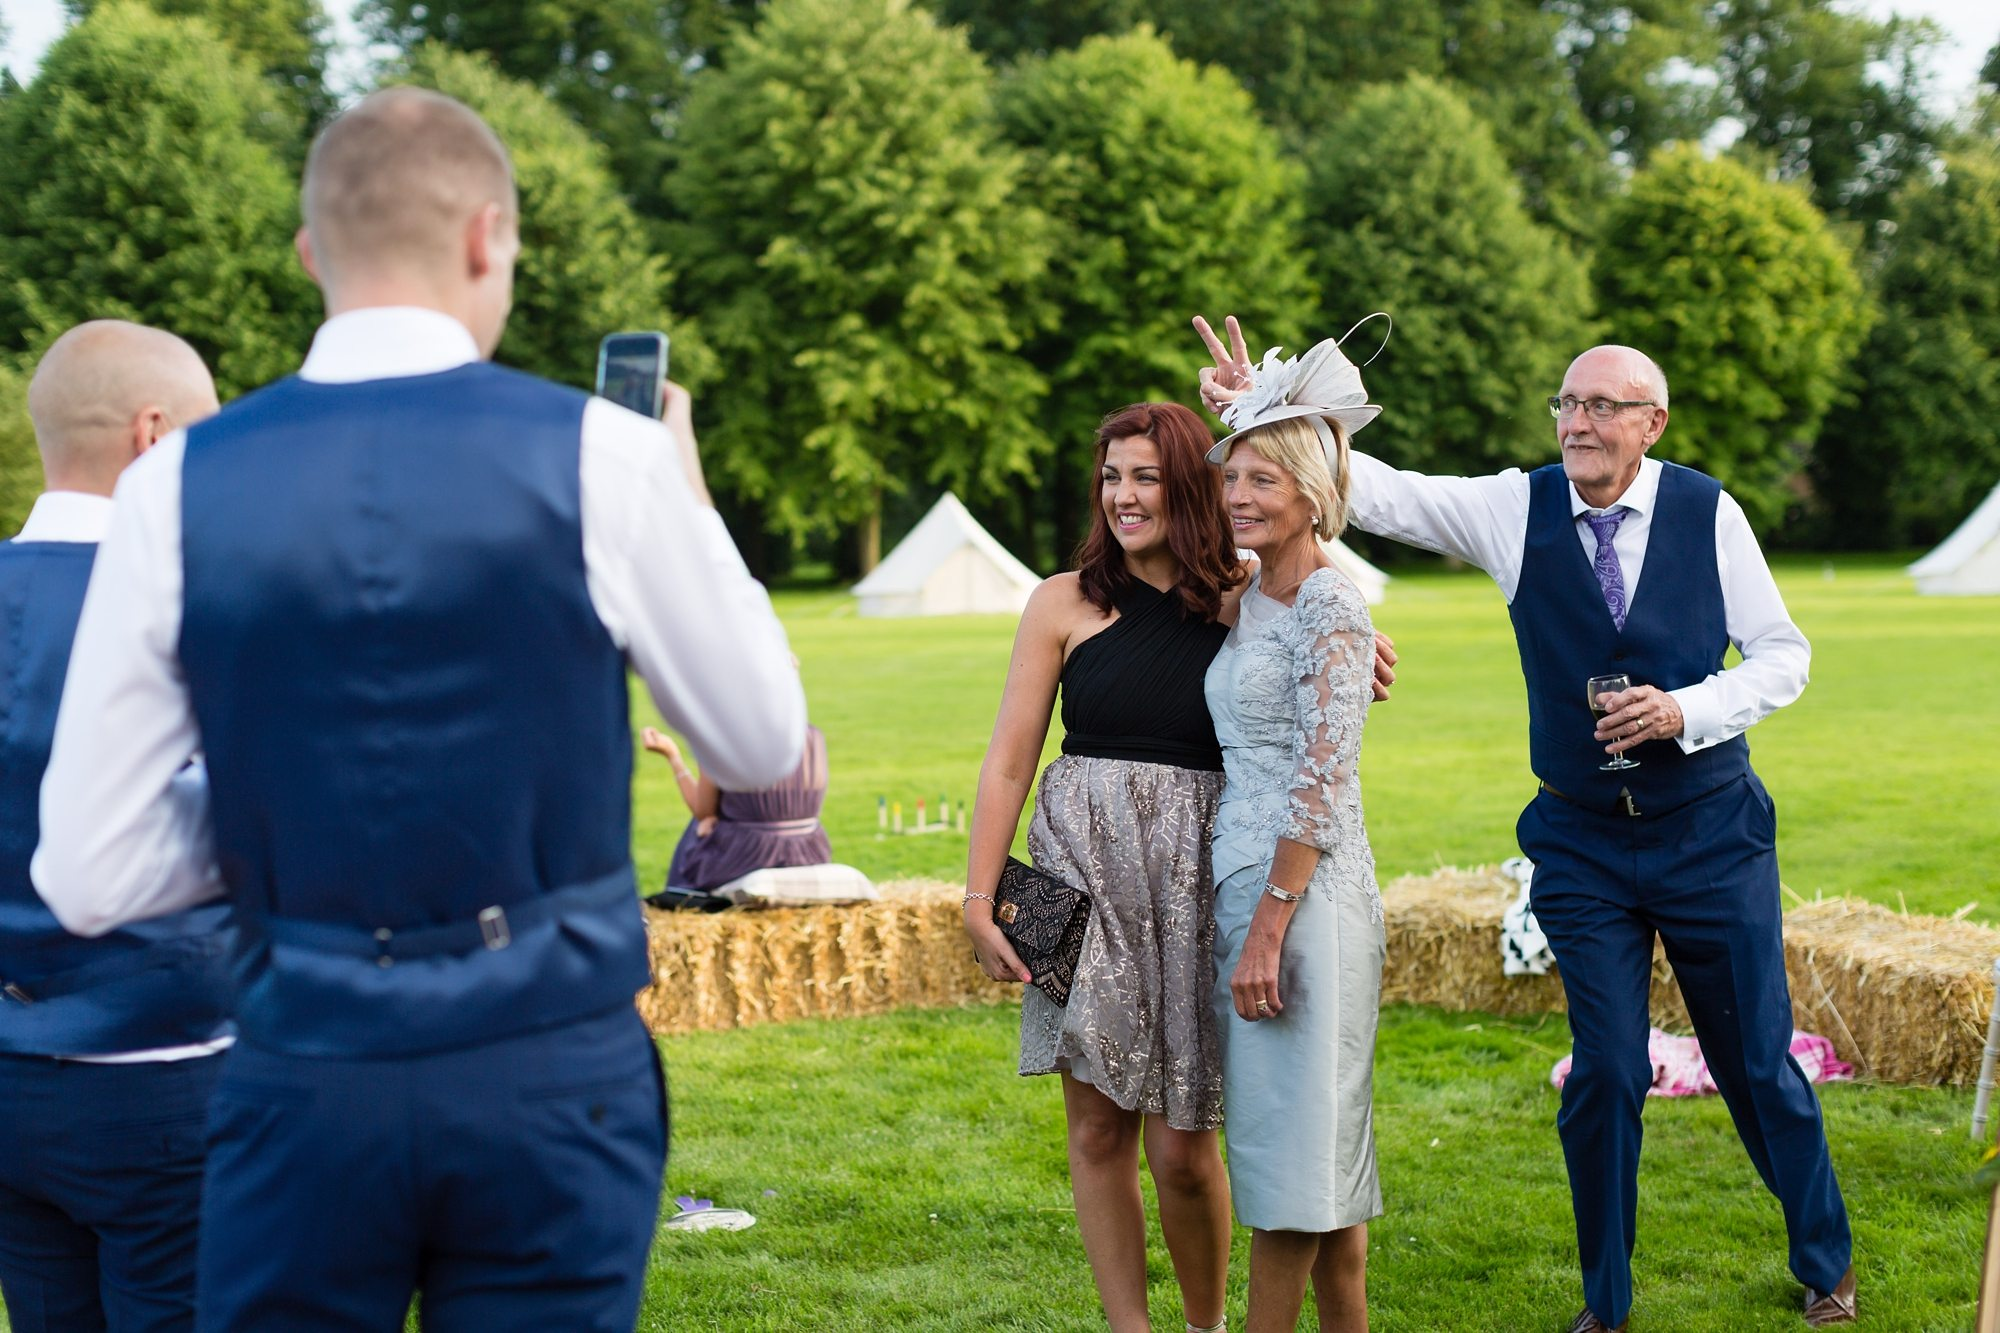 Wedding guests being silly photobomb bunny ears